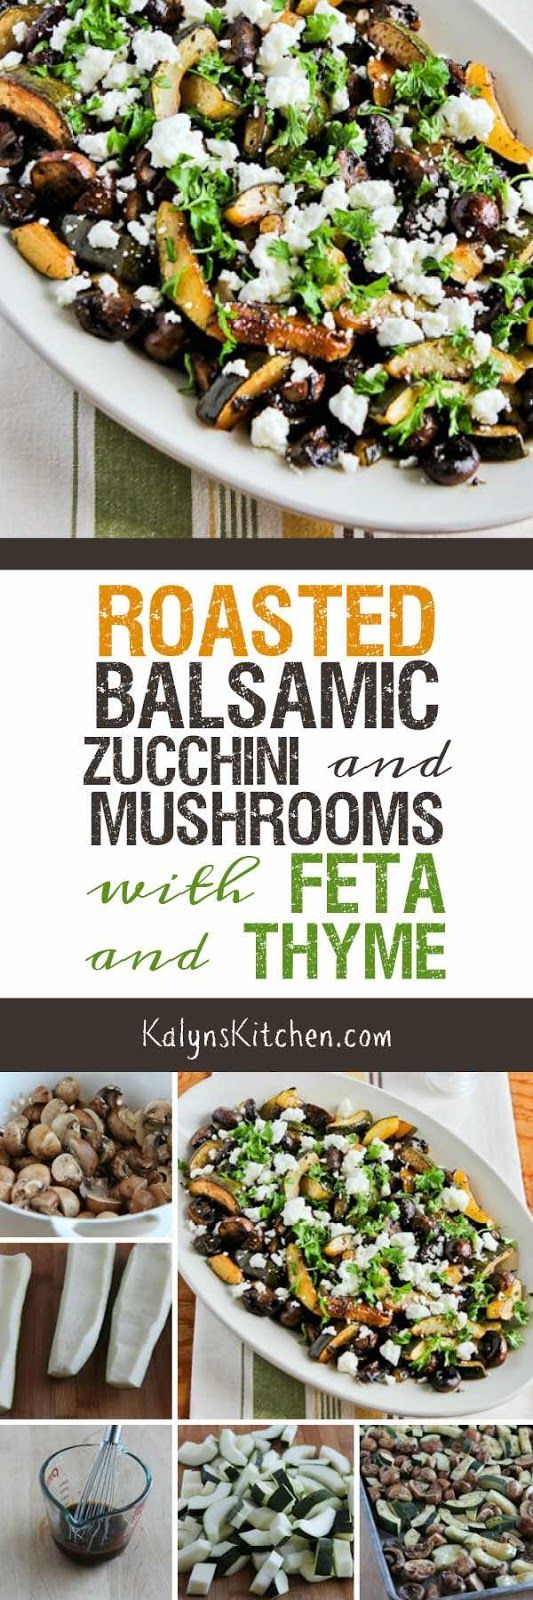 This recipe for Roasted Balsamic Zucchini and Mushrooms with Feta and Thyme is so delicious that it made family history when my brother-in-law had seconds on vegetables! And this tasty way to cook zucchini is low-carb, gluten-free, meatless, and South Beach Diet Phase One. [found on KalynsKitchen.com]